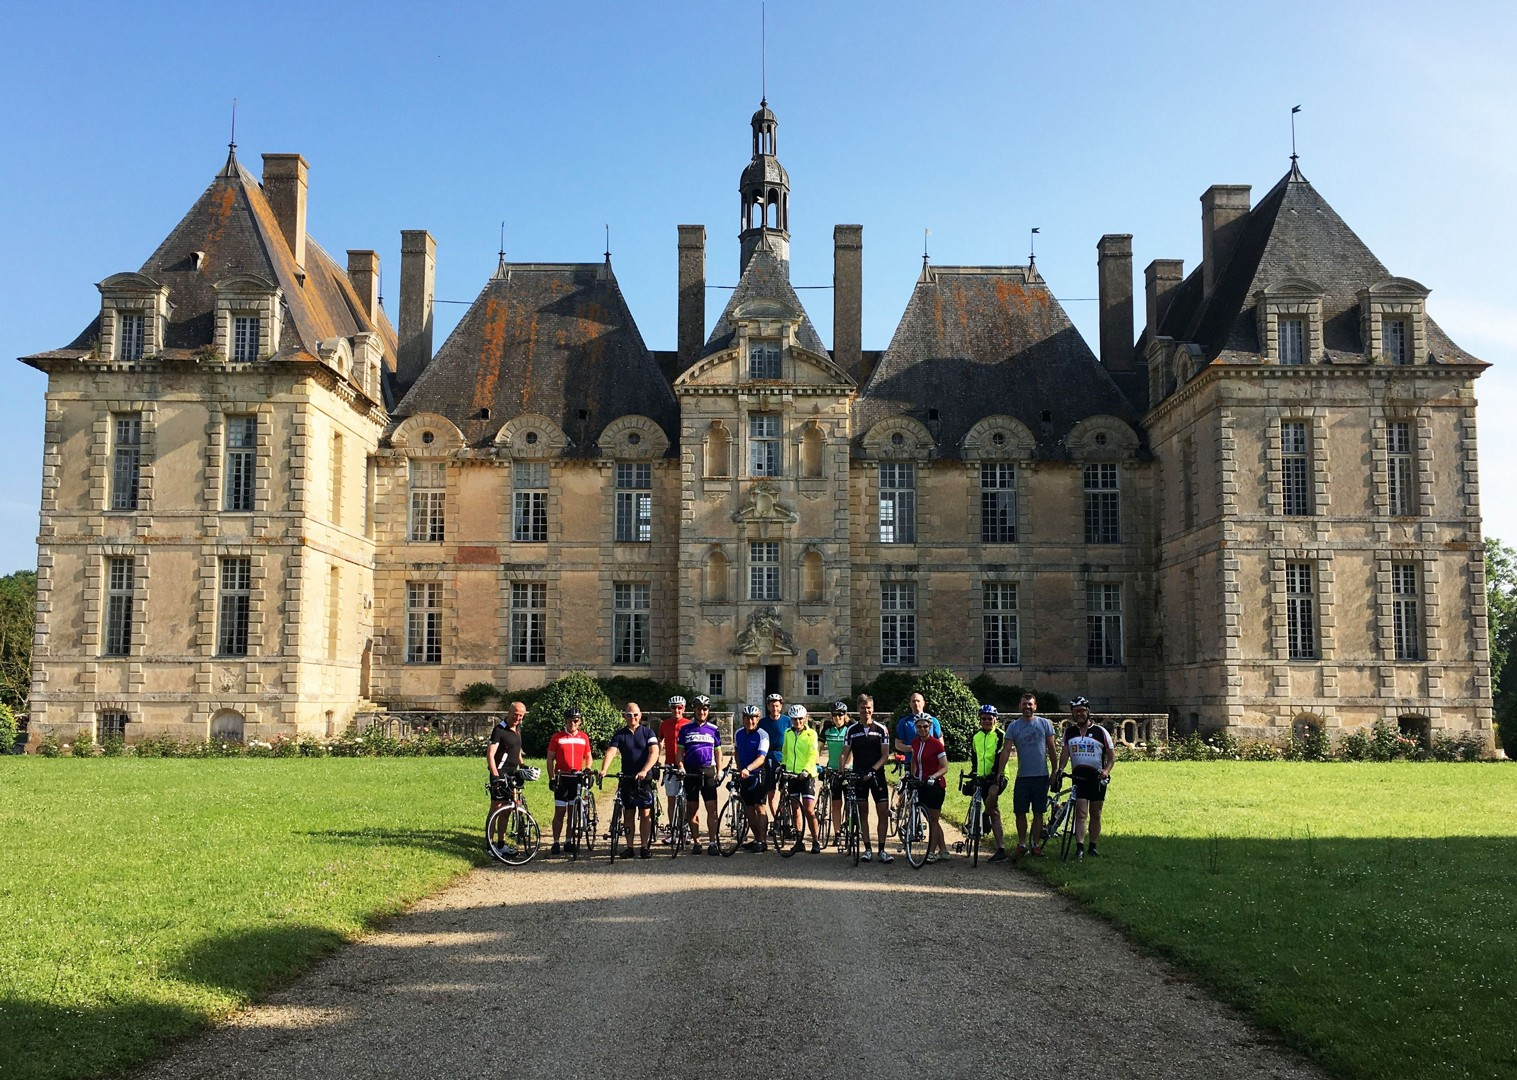 st-malo-to-nice-france-cycling-holiday.jpg - France - St Malo to Nice Classic (15 days) - Guided Road Cycling Holiday - Road Cycling